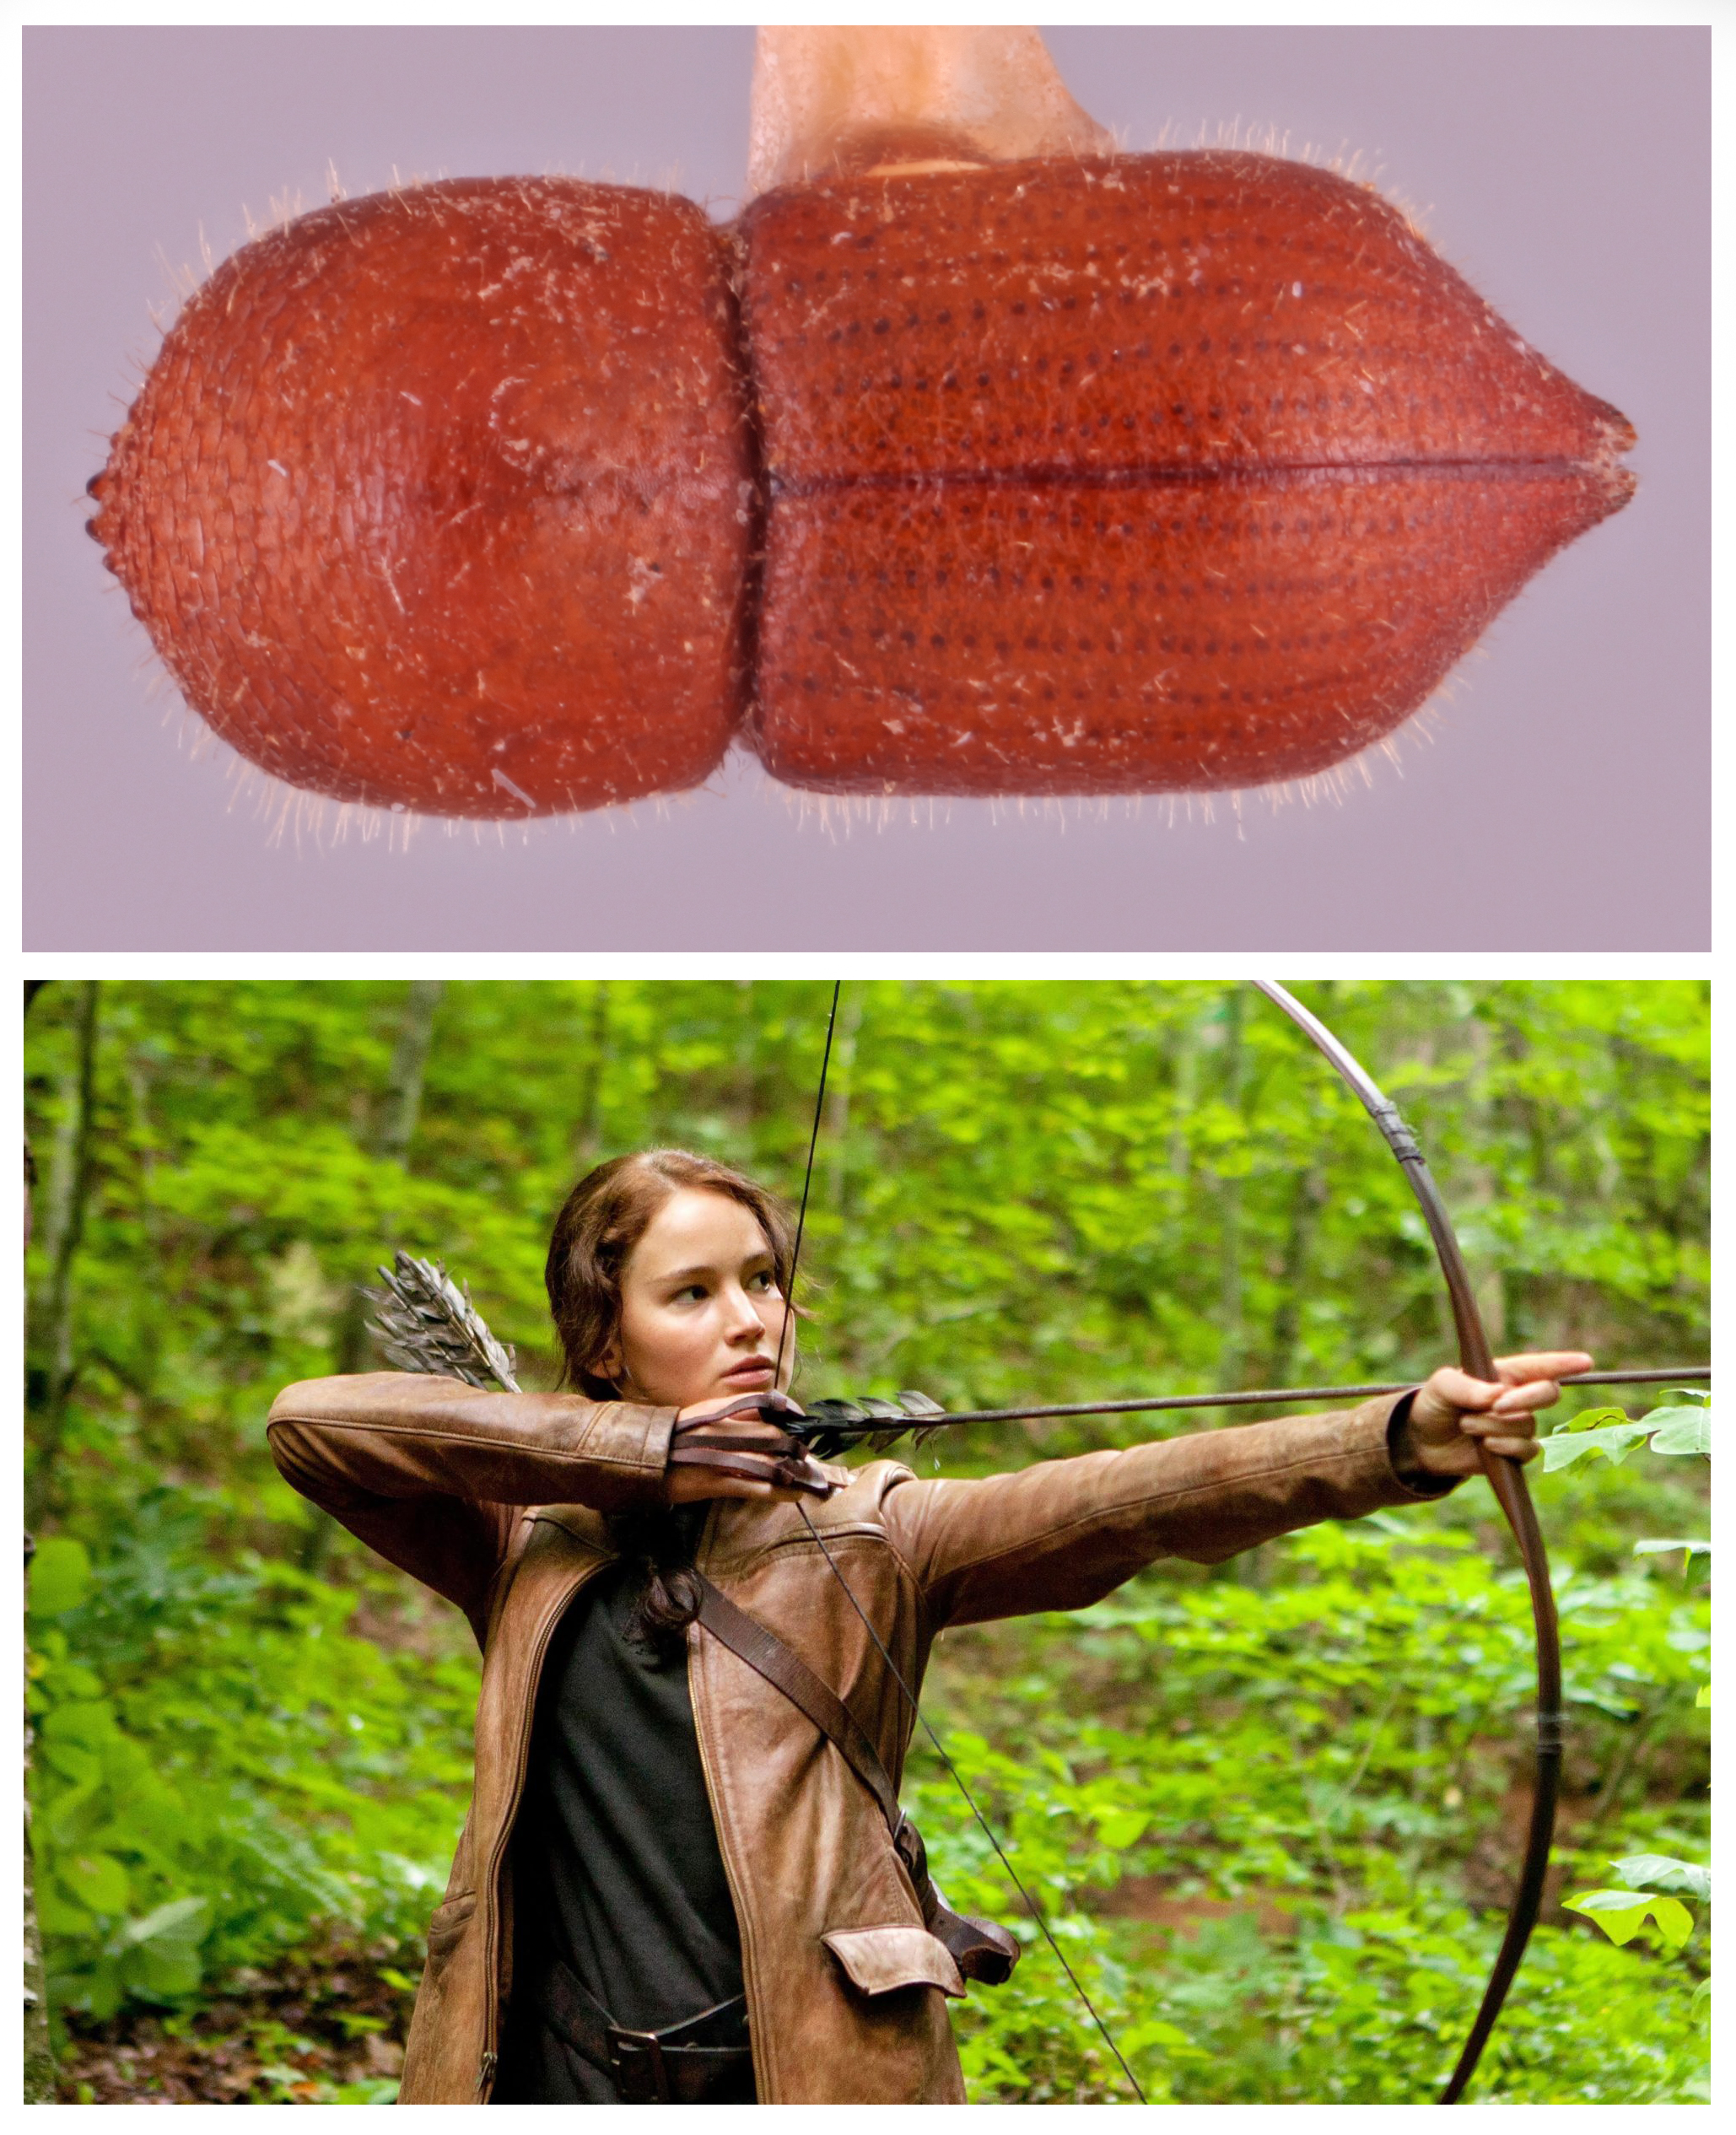 A photo of the Coptoborus katniss. This amber-colored beetle's wing covers come to a point, like an arrowhead, reminding the researchers of Katniss Everdeen, shown in a photo below holding a bow and arrow. The character is played by Jennifer Lawrence in the film adaptation of The Hunger Games.